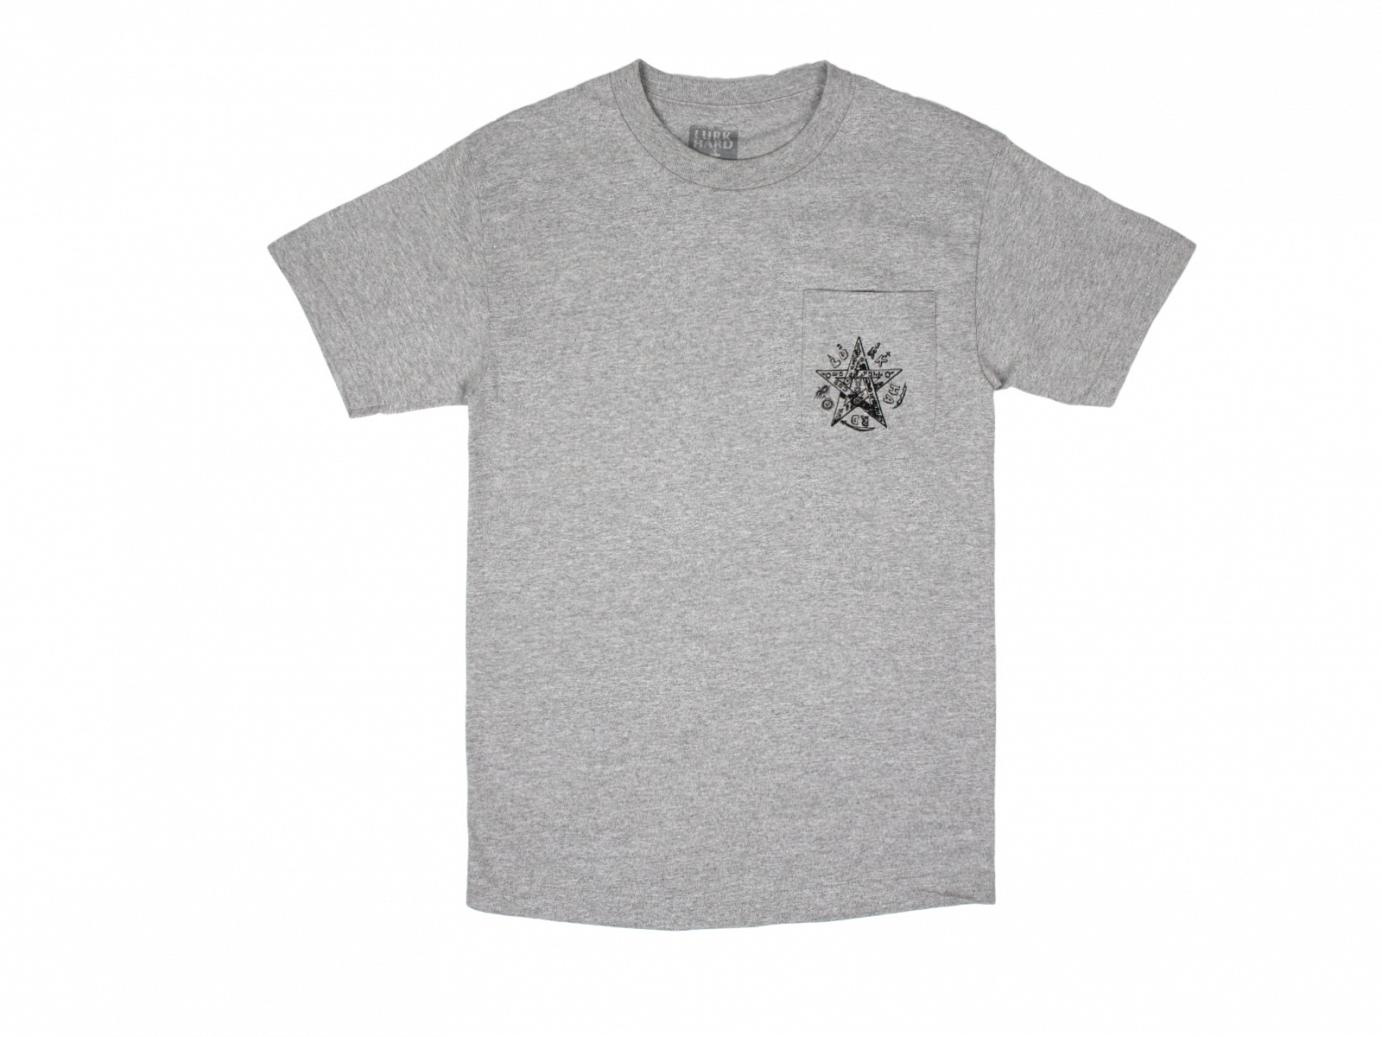 Eliphas pocket tee